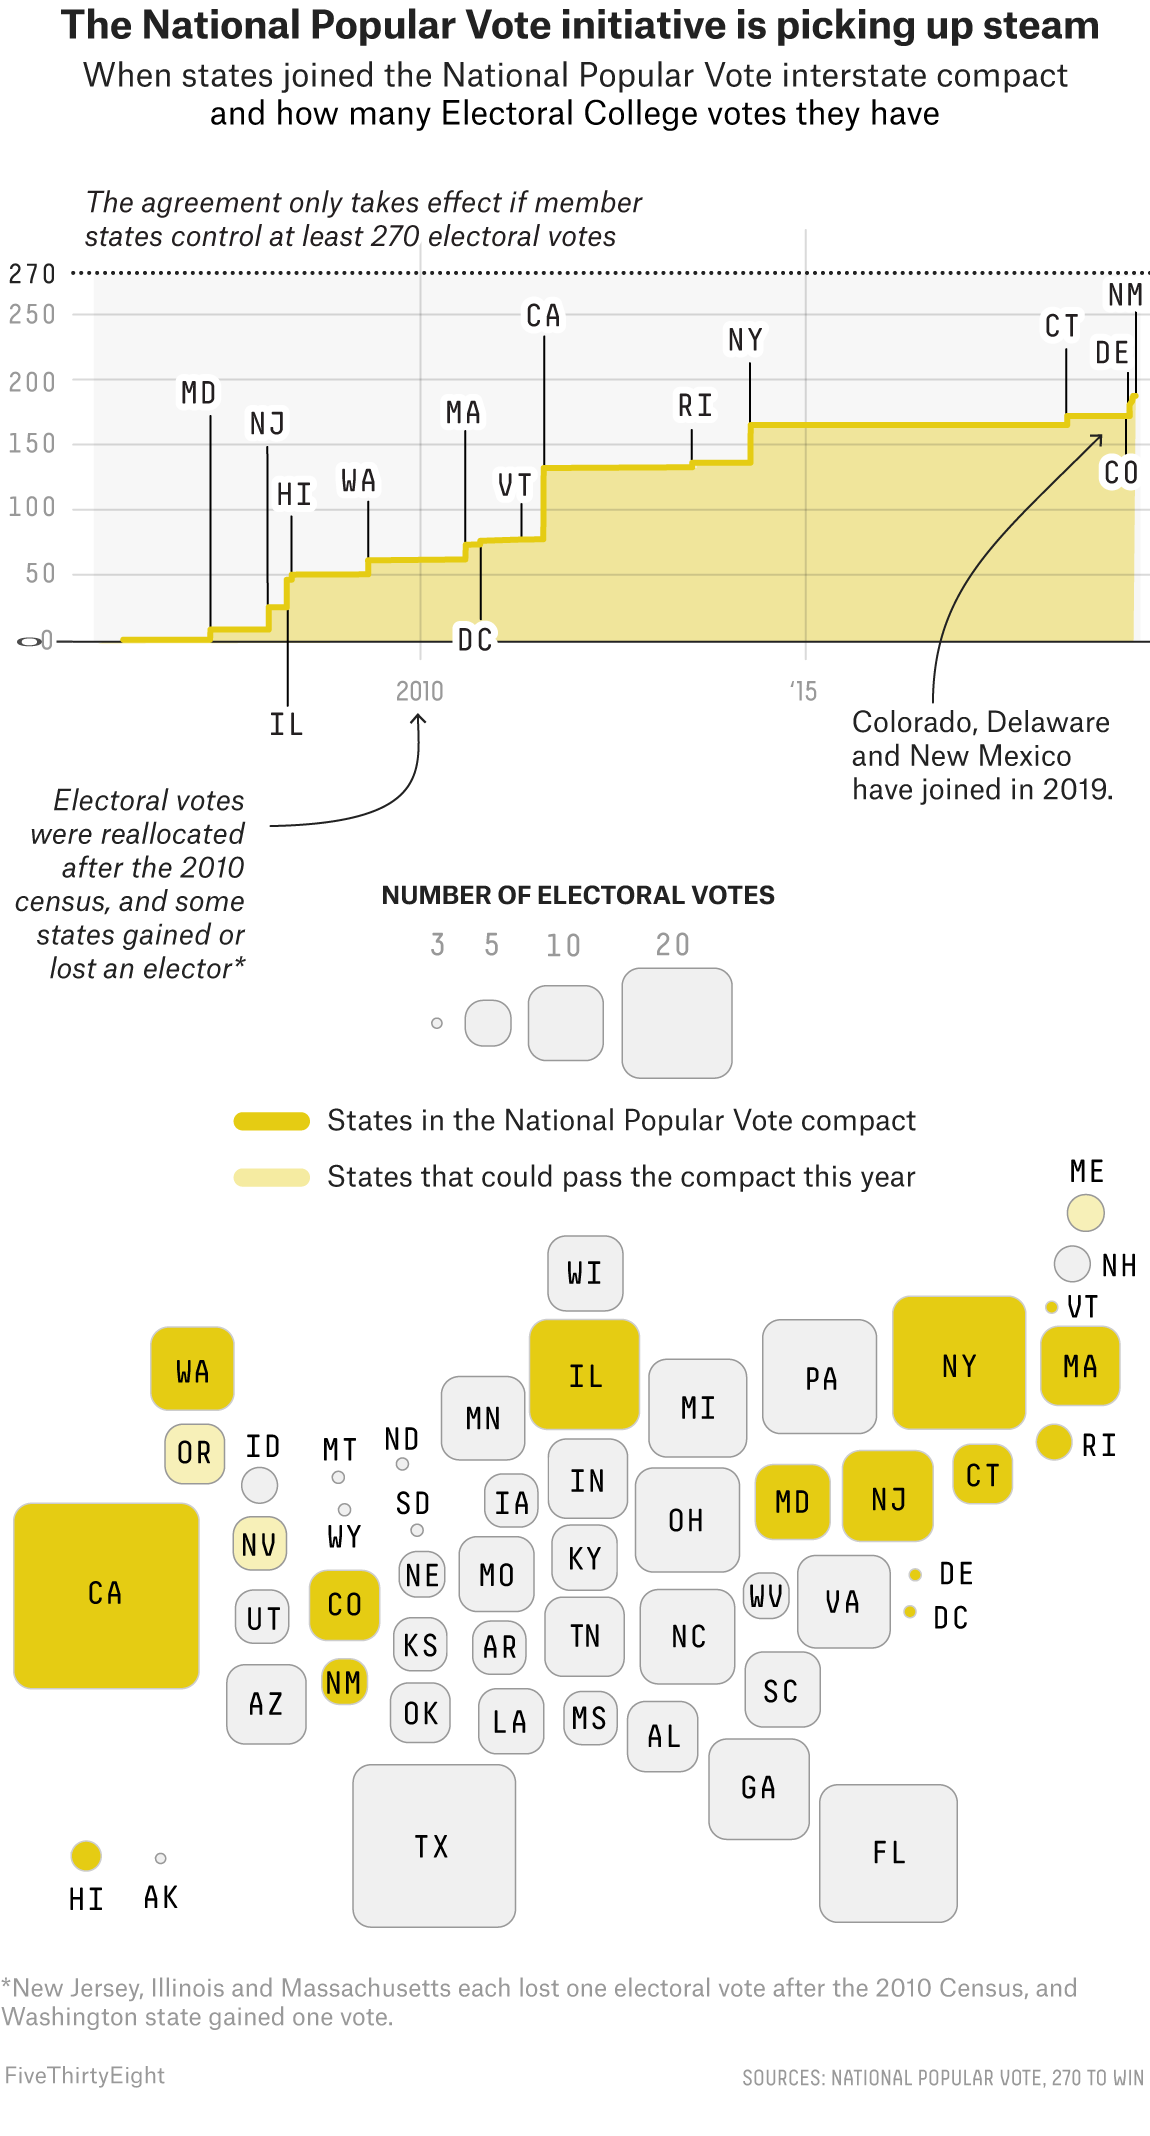 The Movement To Skip The Electoral College Is Picking Up ... on map of corruption, map of science, map of transportation, map of constitution, map of veterans, map of lgbt, map of home, map of media, map of iran, map of fashion, map of poverty, map of afghanistan, map of war, map of thanksgiving, map of facebook, map of business, map of congress, map of freedom, map of travel,